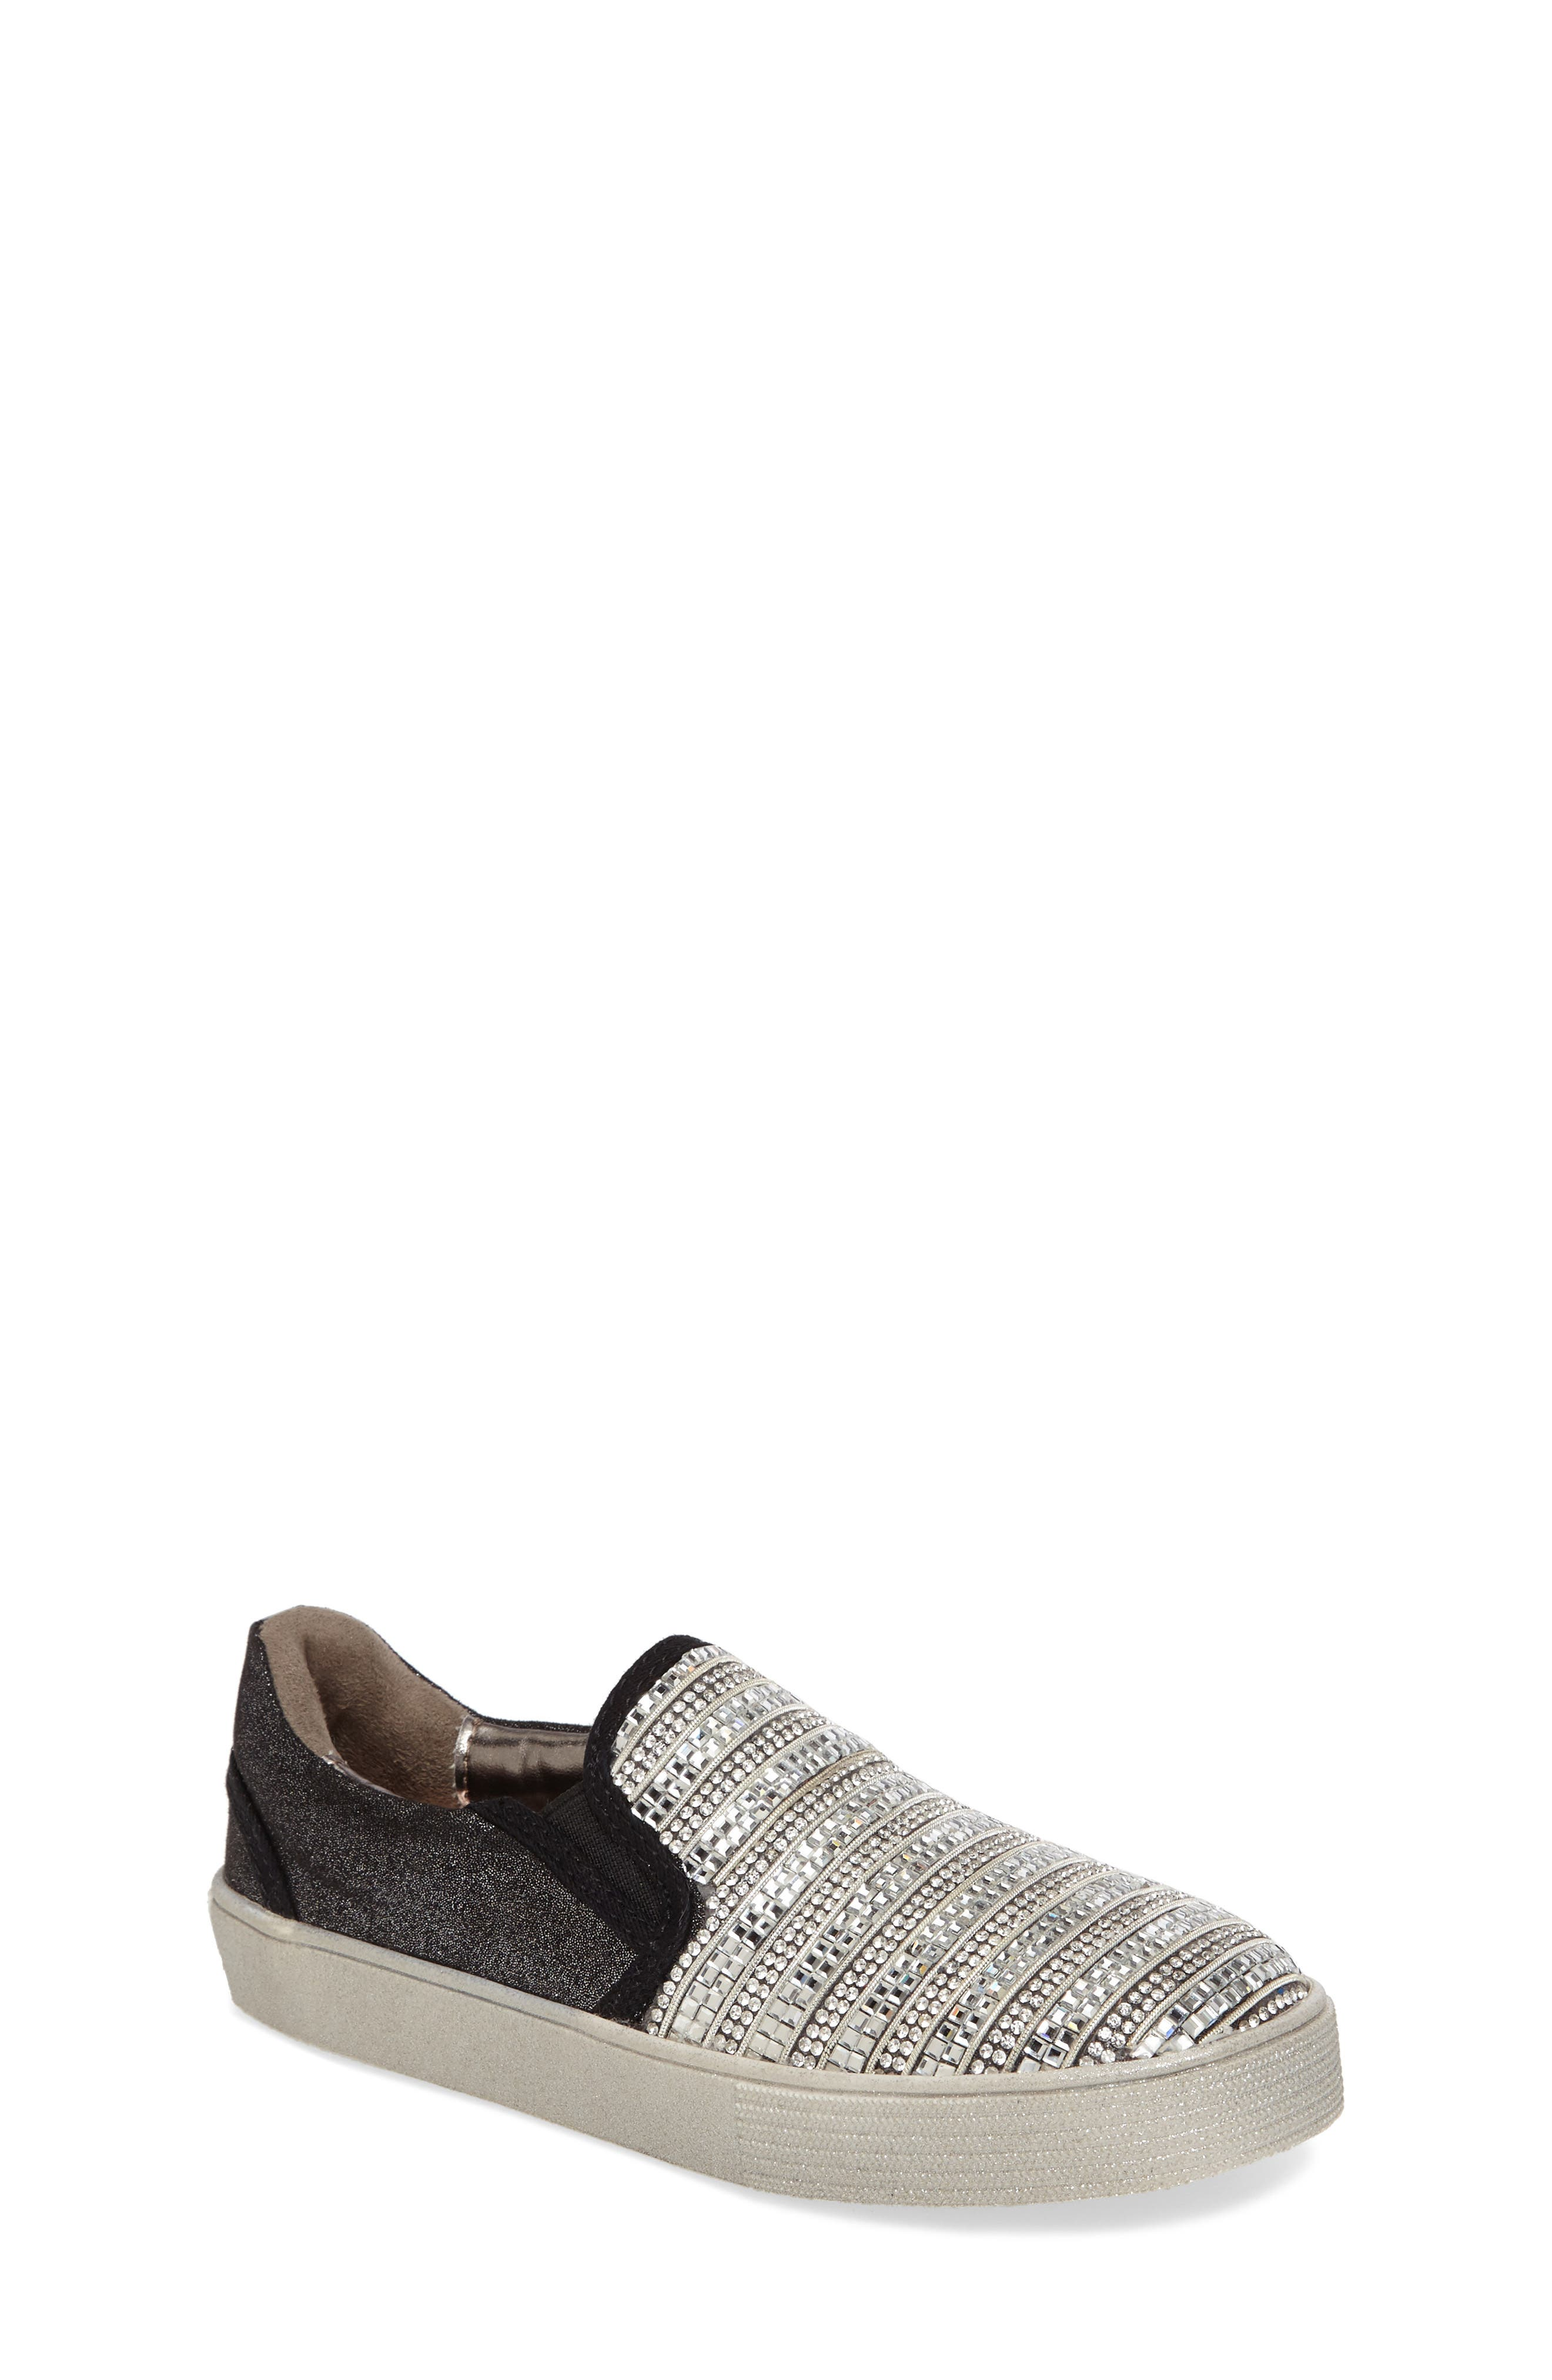 Stuart Weitzman Vance Glitz Slip-On Sneaker (Walker, Toddler, Little Kid & Big Kid)